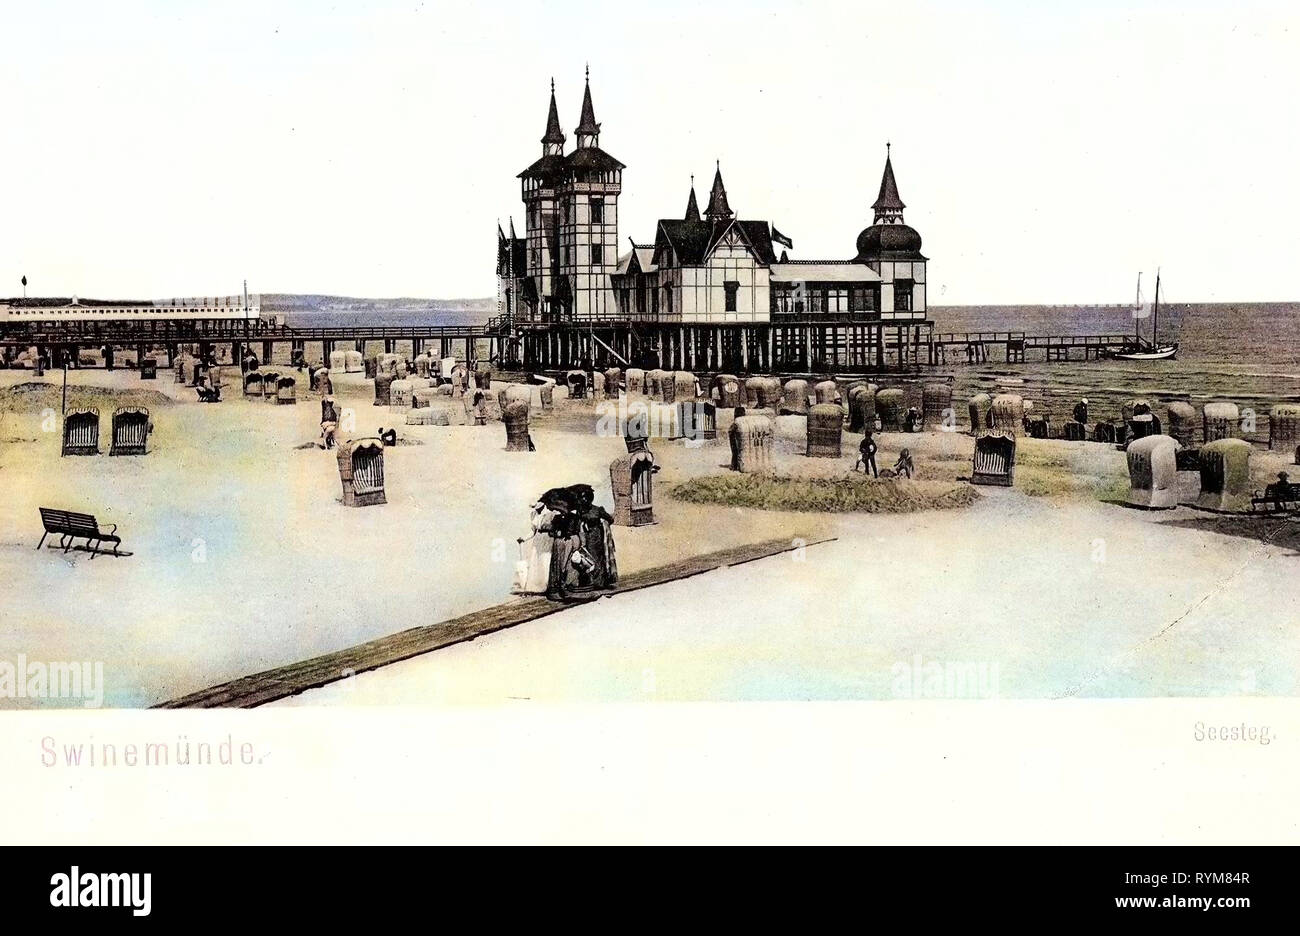 Piers in Poland, Strandkorbs, Beaches of Poland, Ships in Poland, Old, Świnoujście, 1903, West Pomeranian Voivodeship, Swinemünde, Seesteg Stock Photo